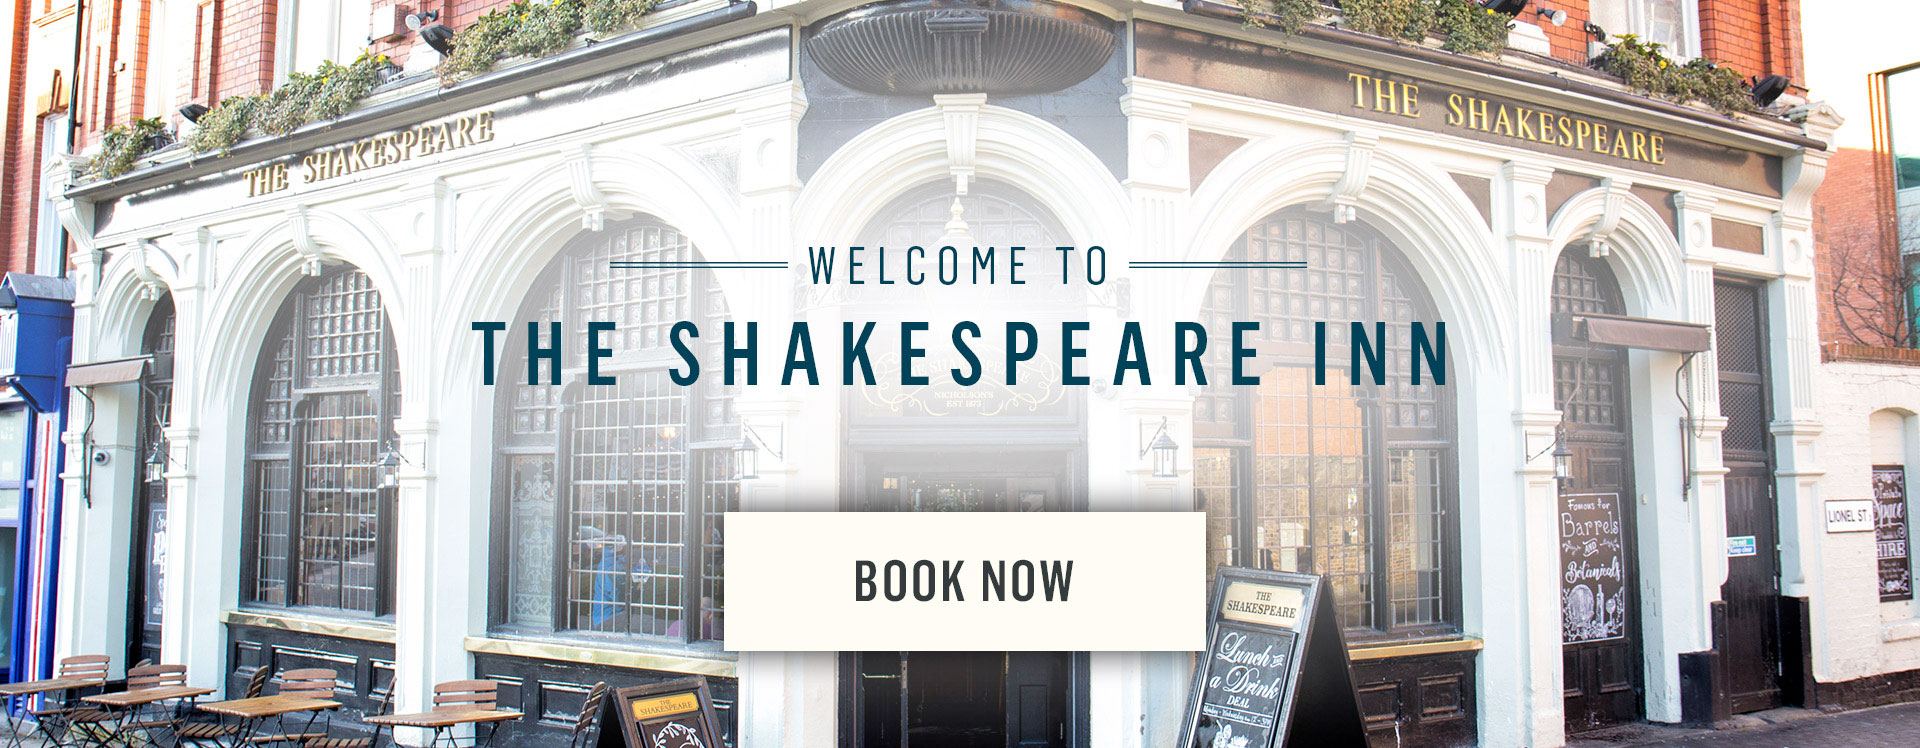 Welcome to The Shakespeare Inn - Book Now